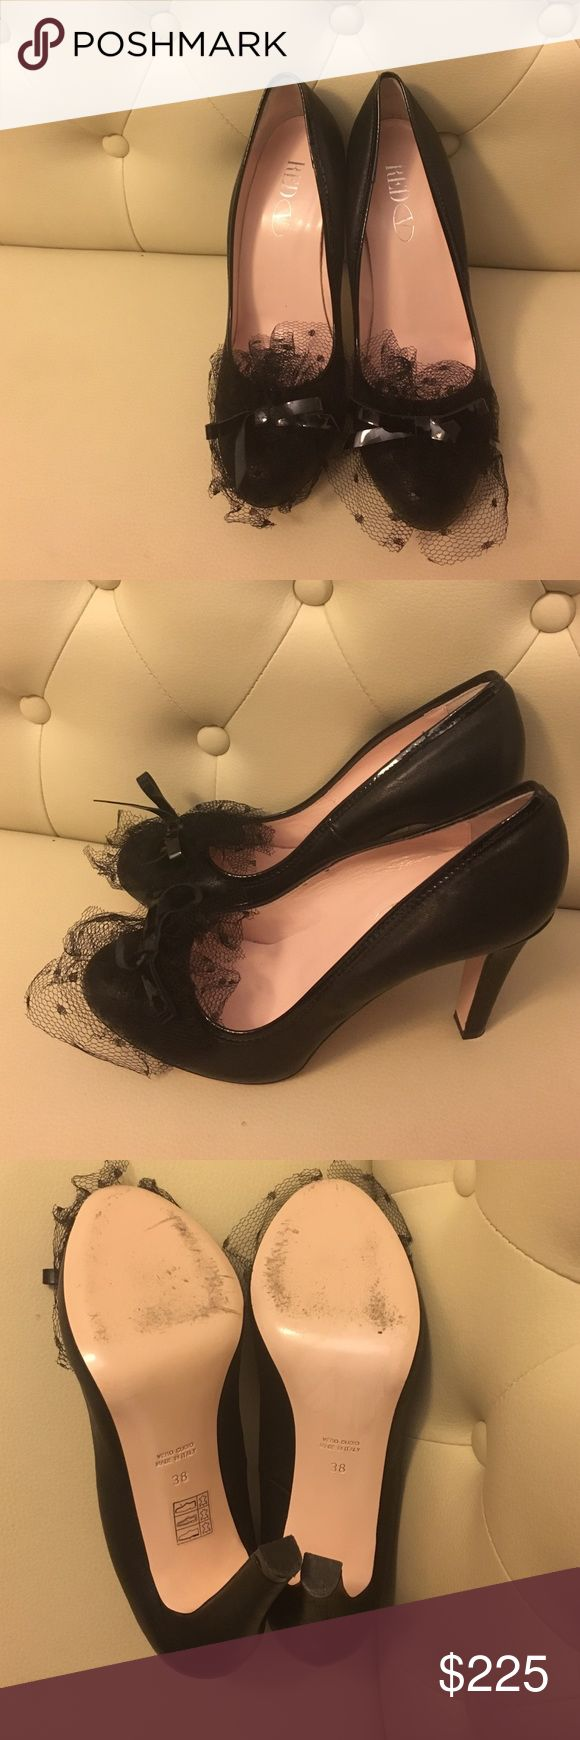 Like New Red Valentino tulle pumps 38 Like New Red Valentino tulle pumps 38 RED Valentino Shoes Heels